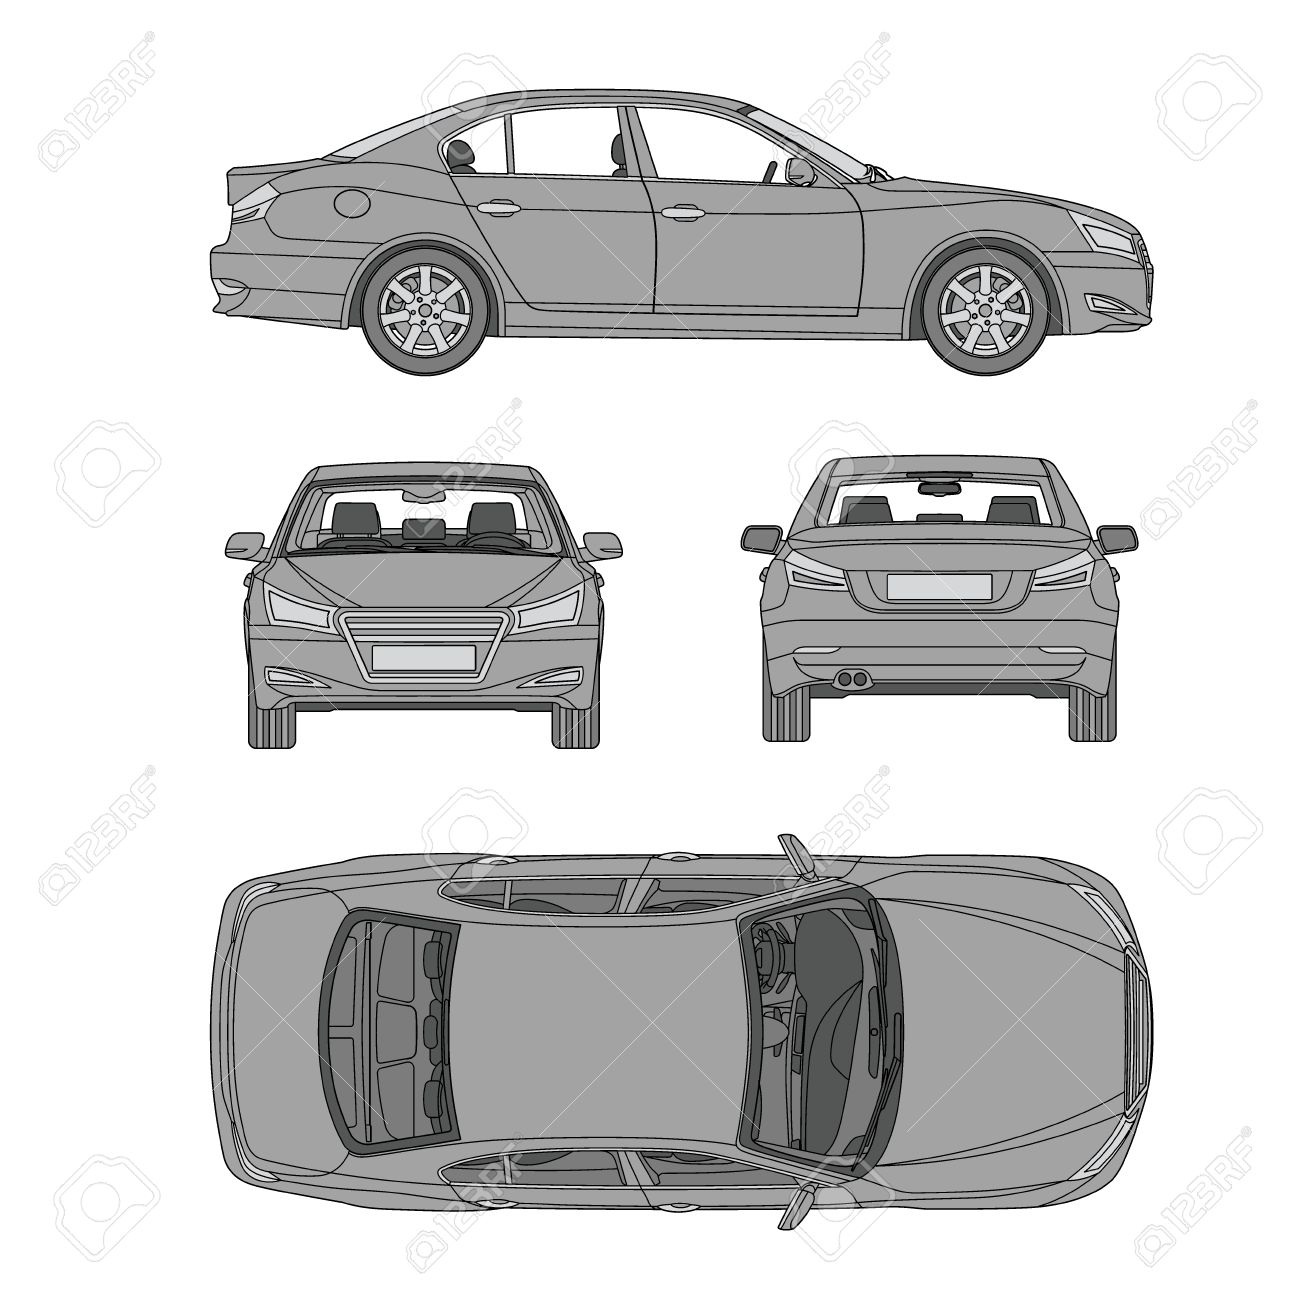 Car line draw insurance rent damage condition report form car line draw insurance rent damage condition report form blueprint stock vector 58812895 malvernweather Image collections